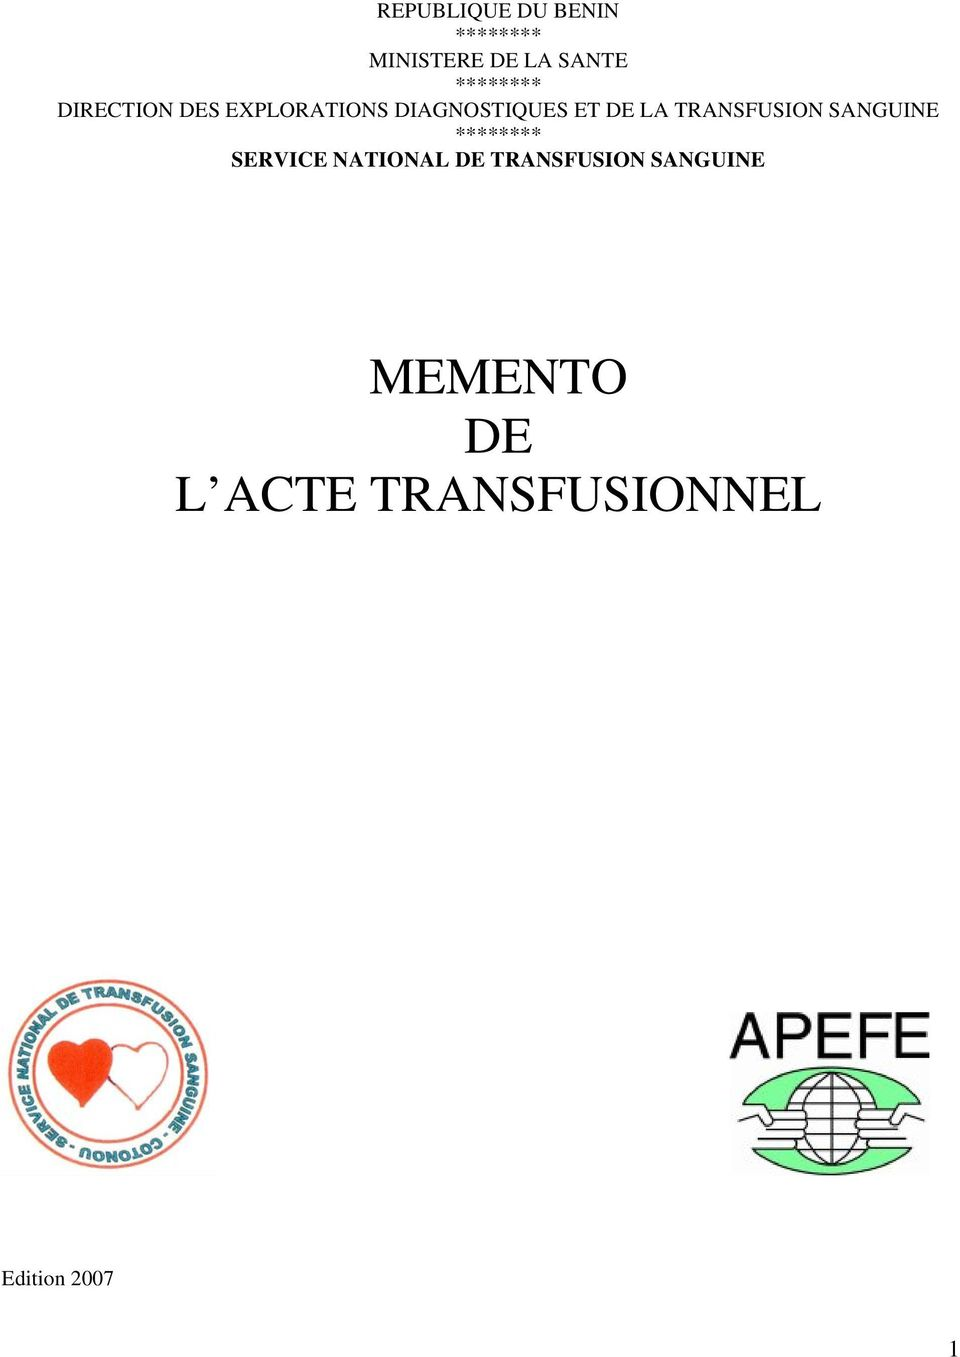 LA TRANSFUSION SANGUINE ******** SERVICE NATIONAL DE